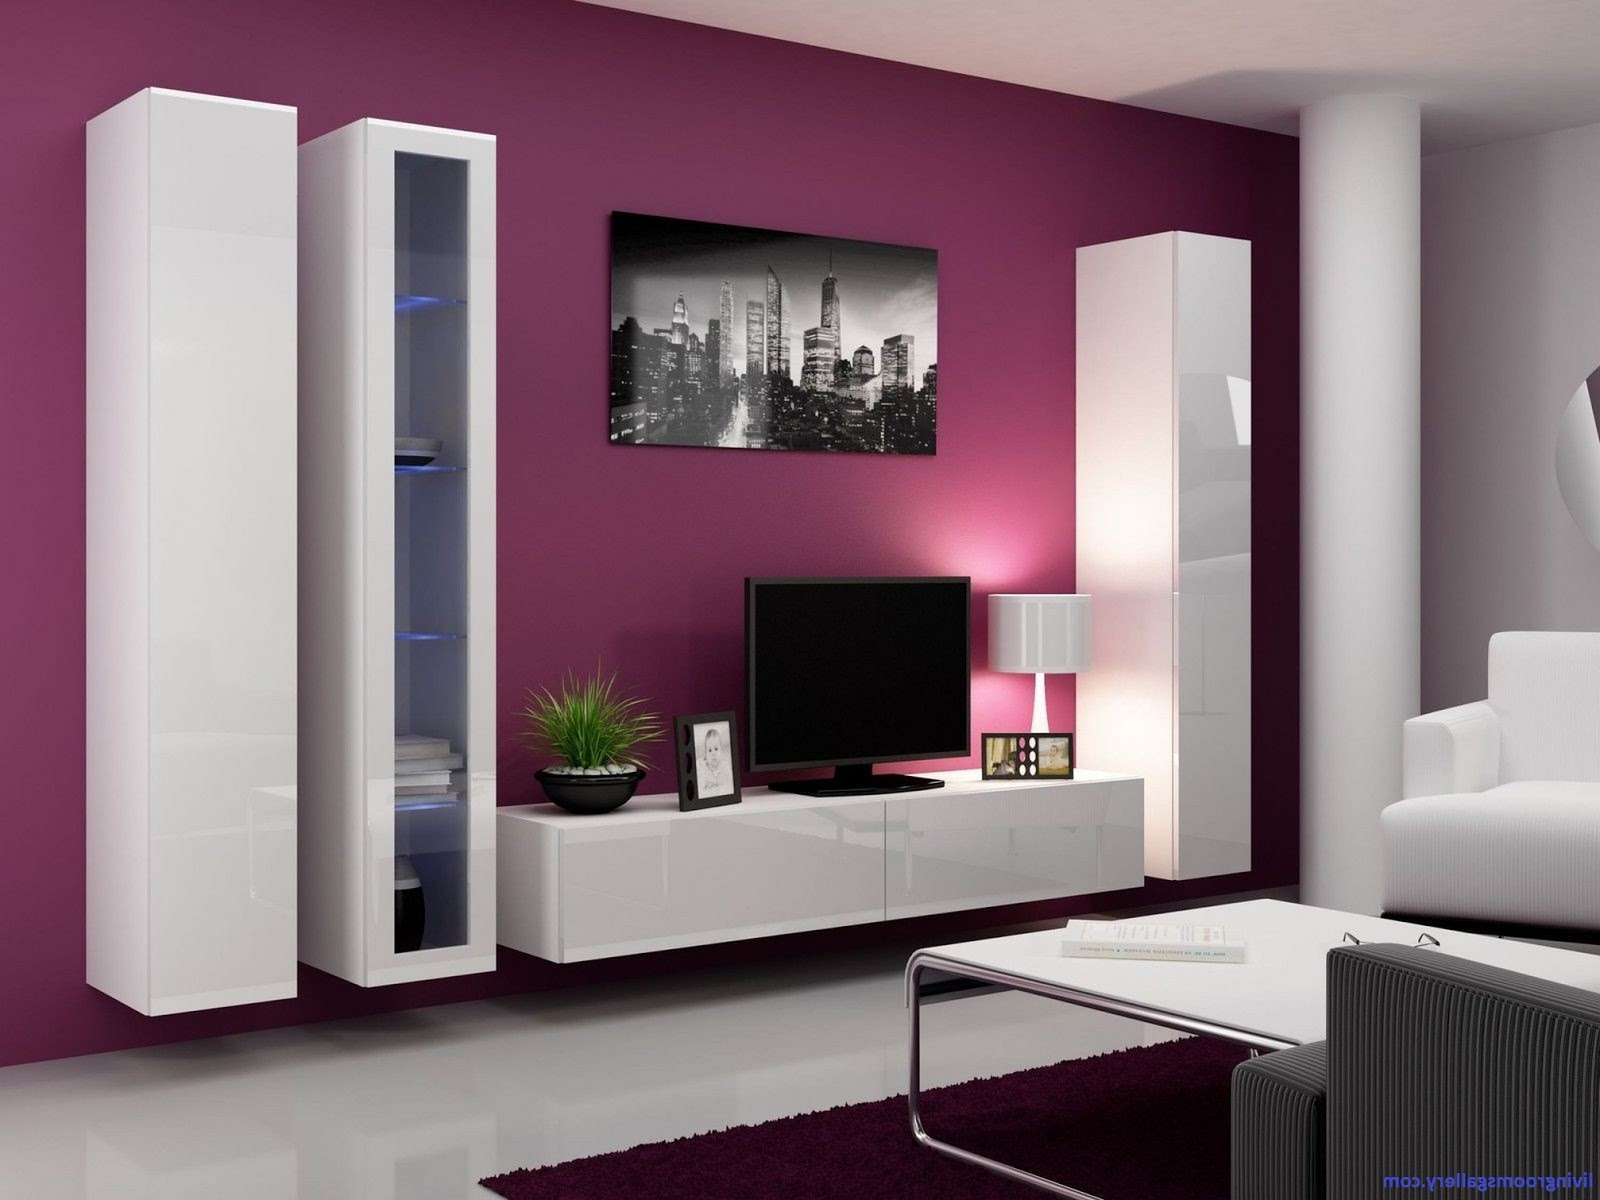 Tv : Modern Tv Cabinets Incredible 12 Dark Chocolate Finish Intended For Funky Tv Cabinets (View 18 of 20)